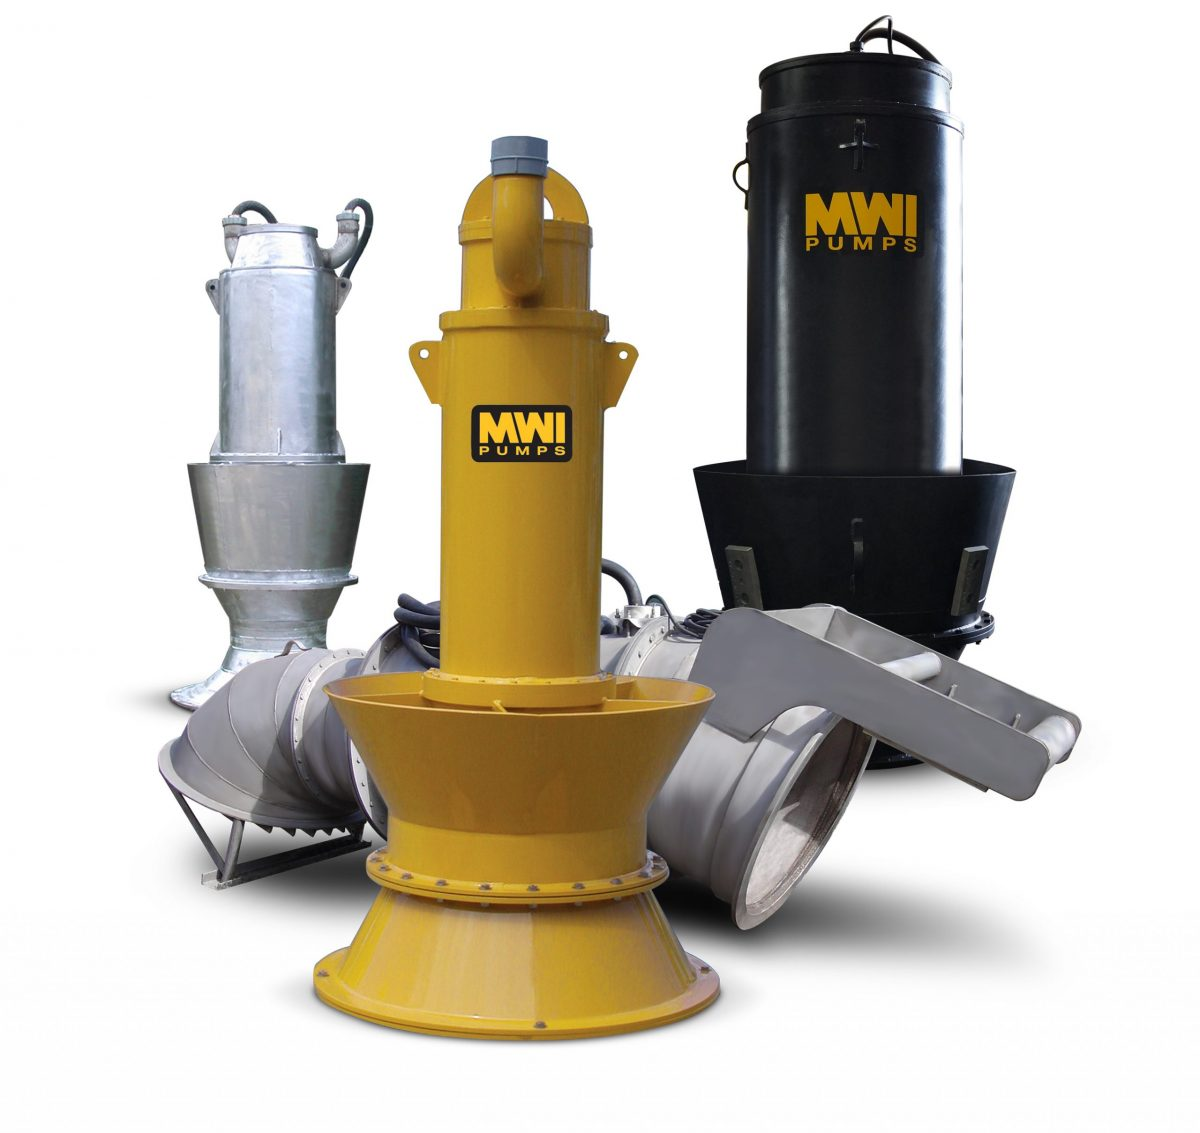 Submersible-Electric-MWI-pumps-family